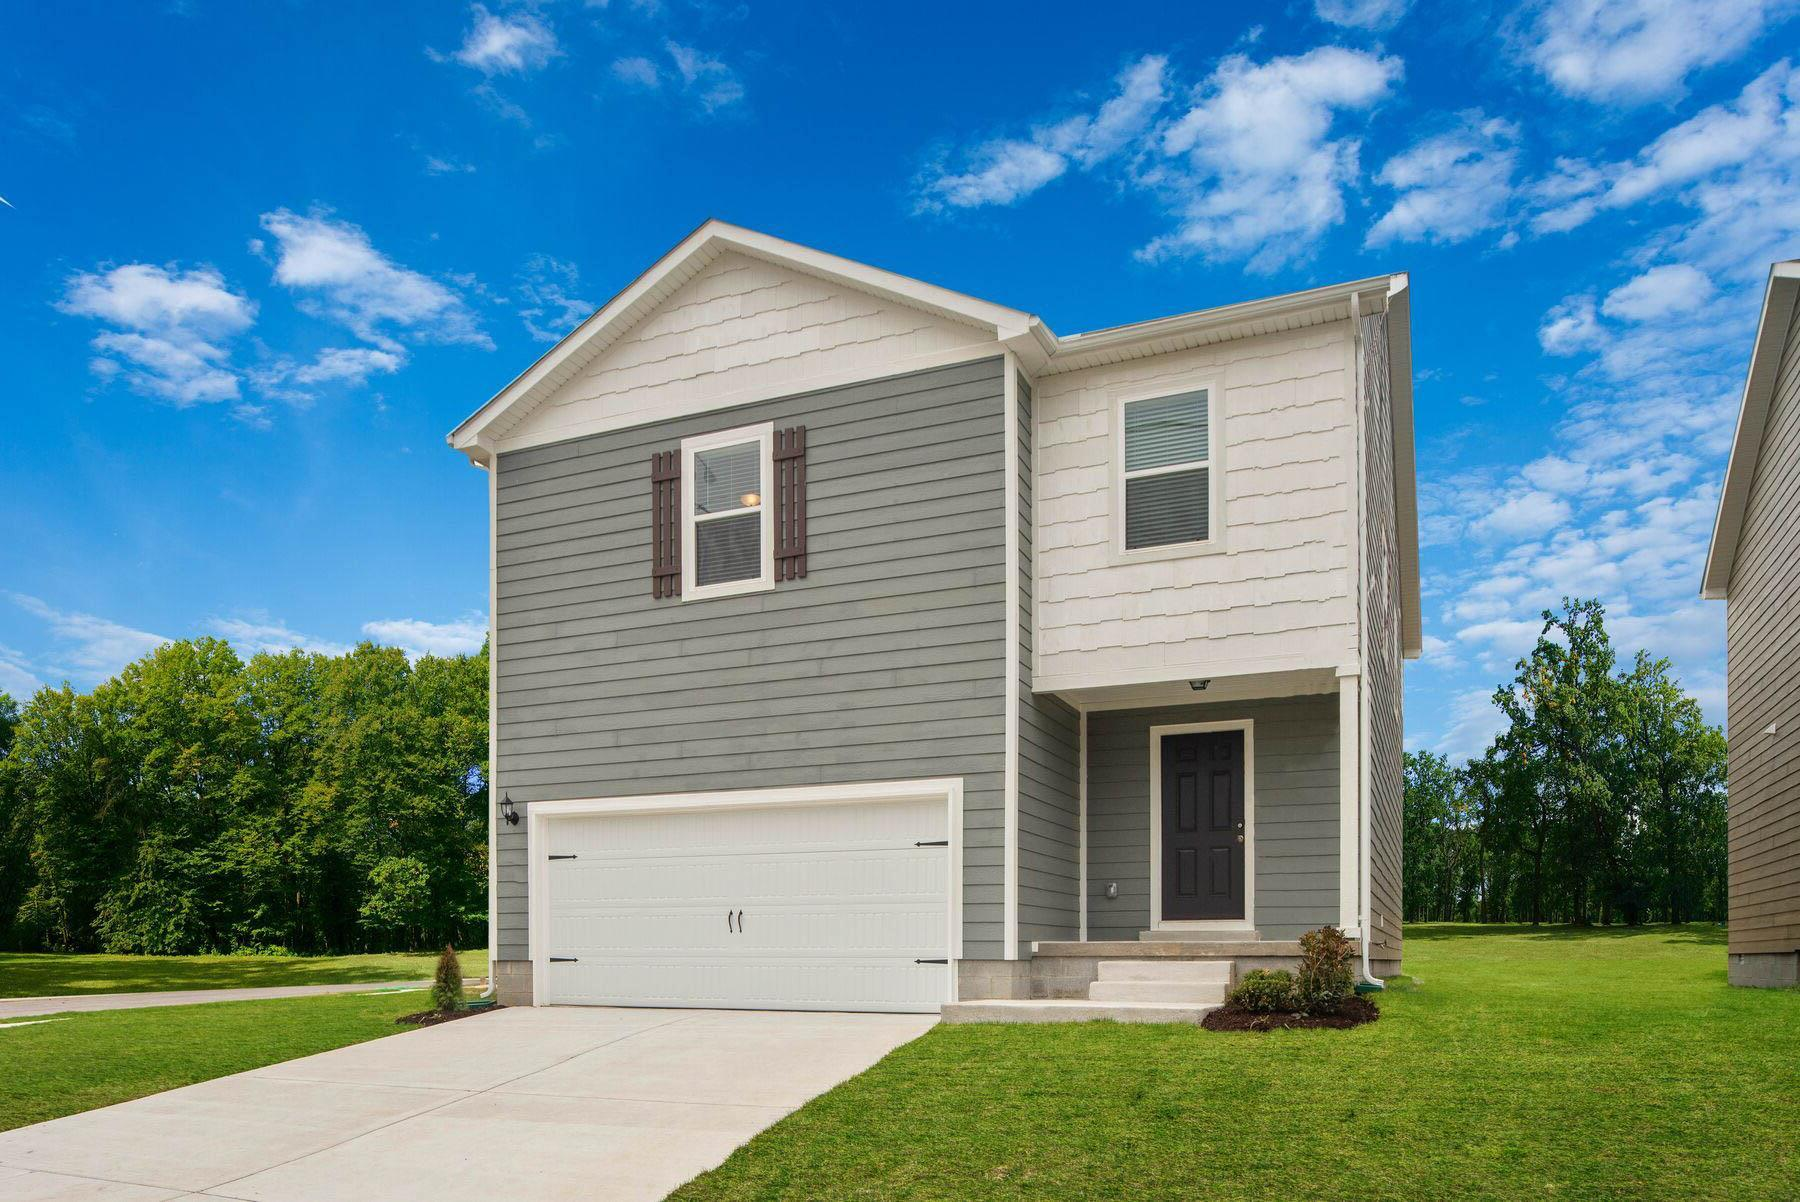 The Old Hickory by LGI Homes:The Old Hickory is a stunning 4-bedroom home in La Vergne!